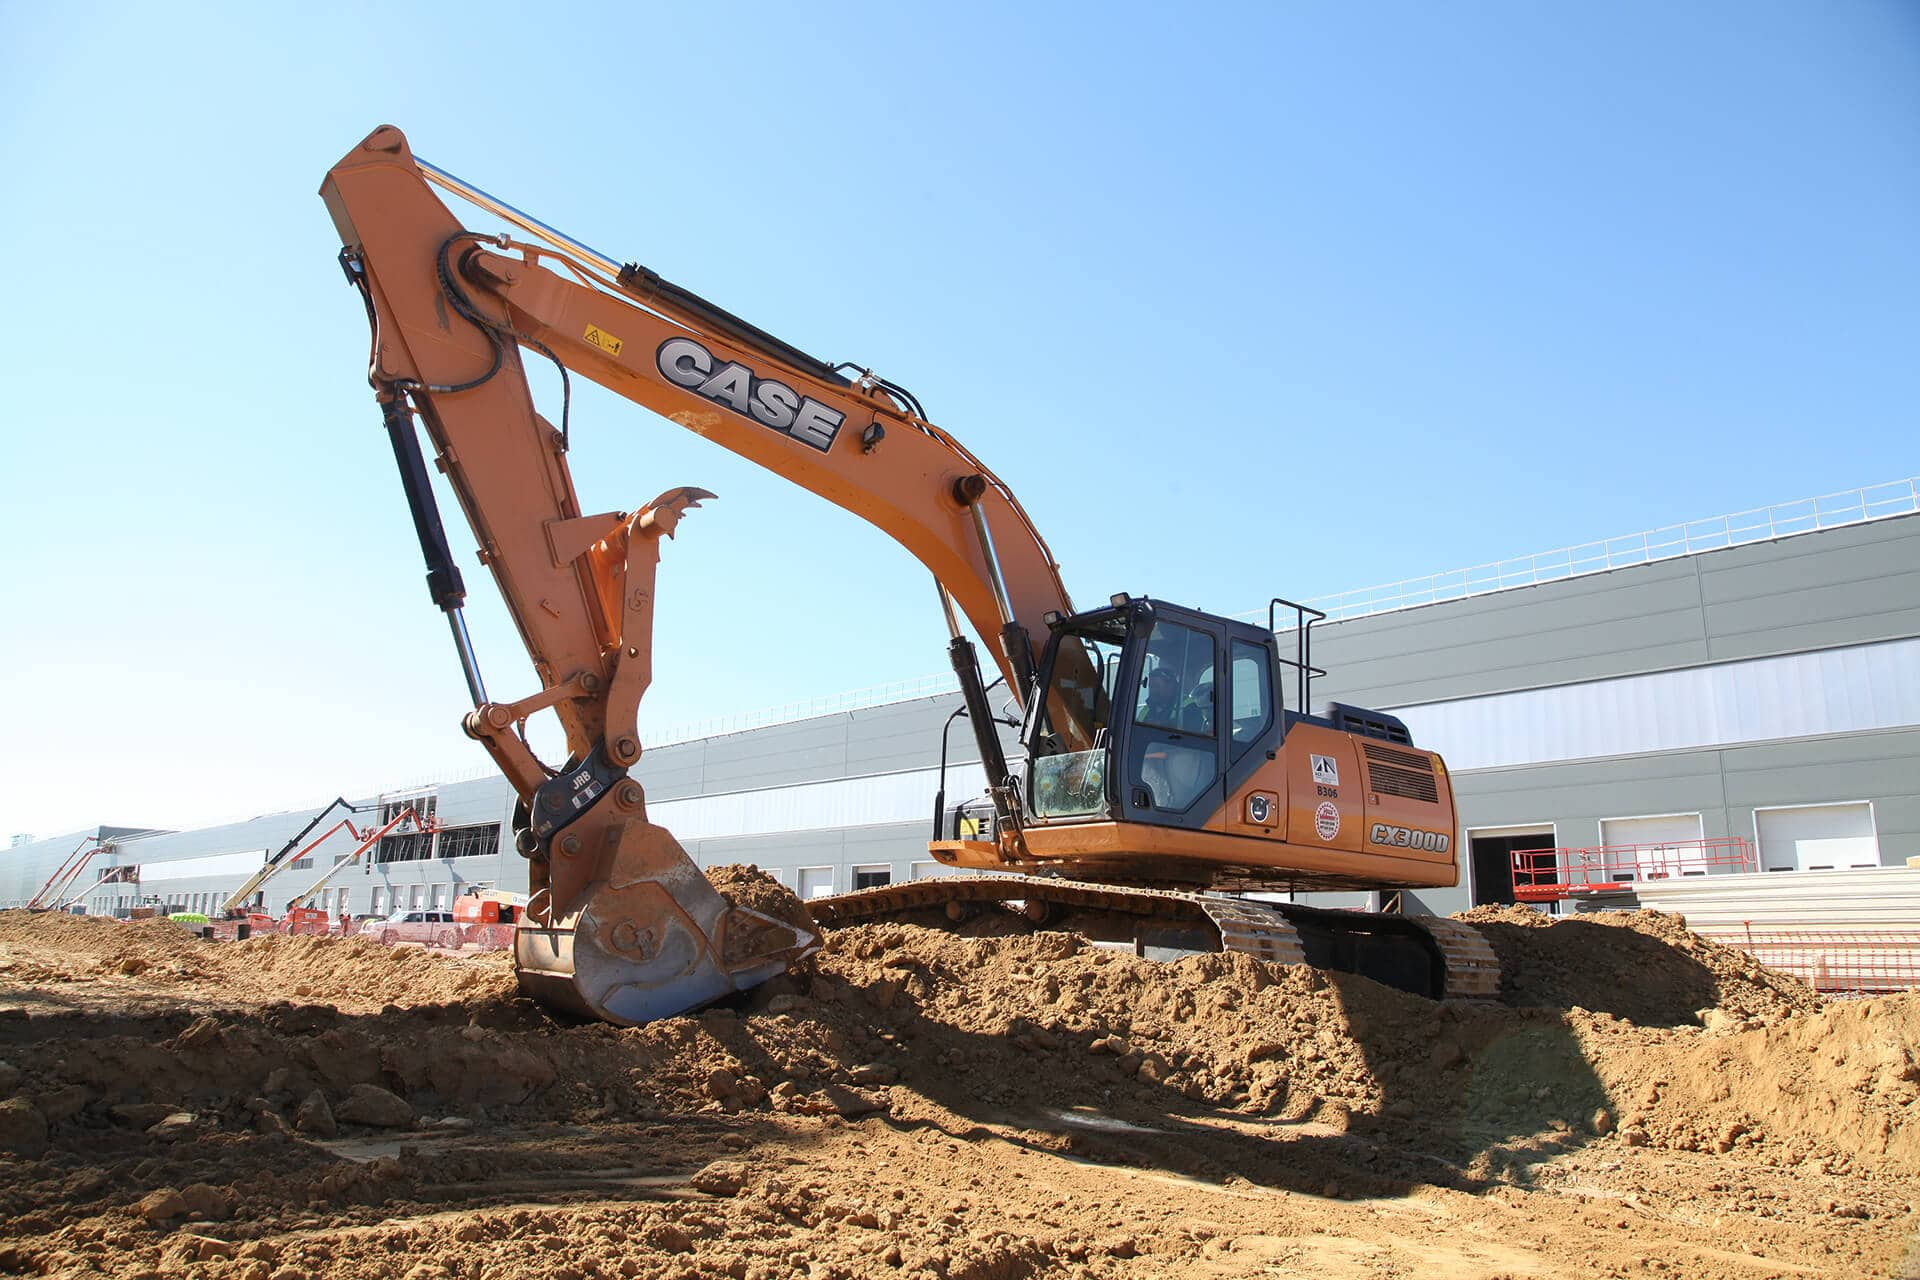 Excavator Proves to be Jack-of-All Trades| CASE News